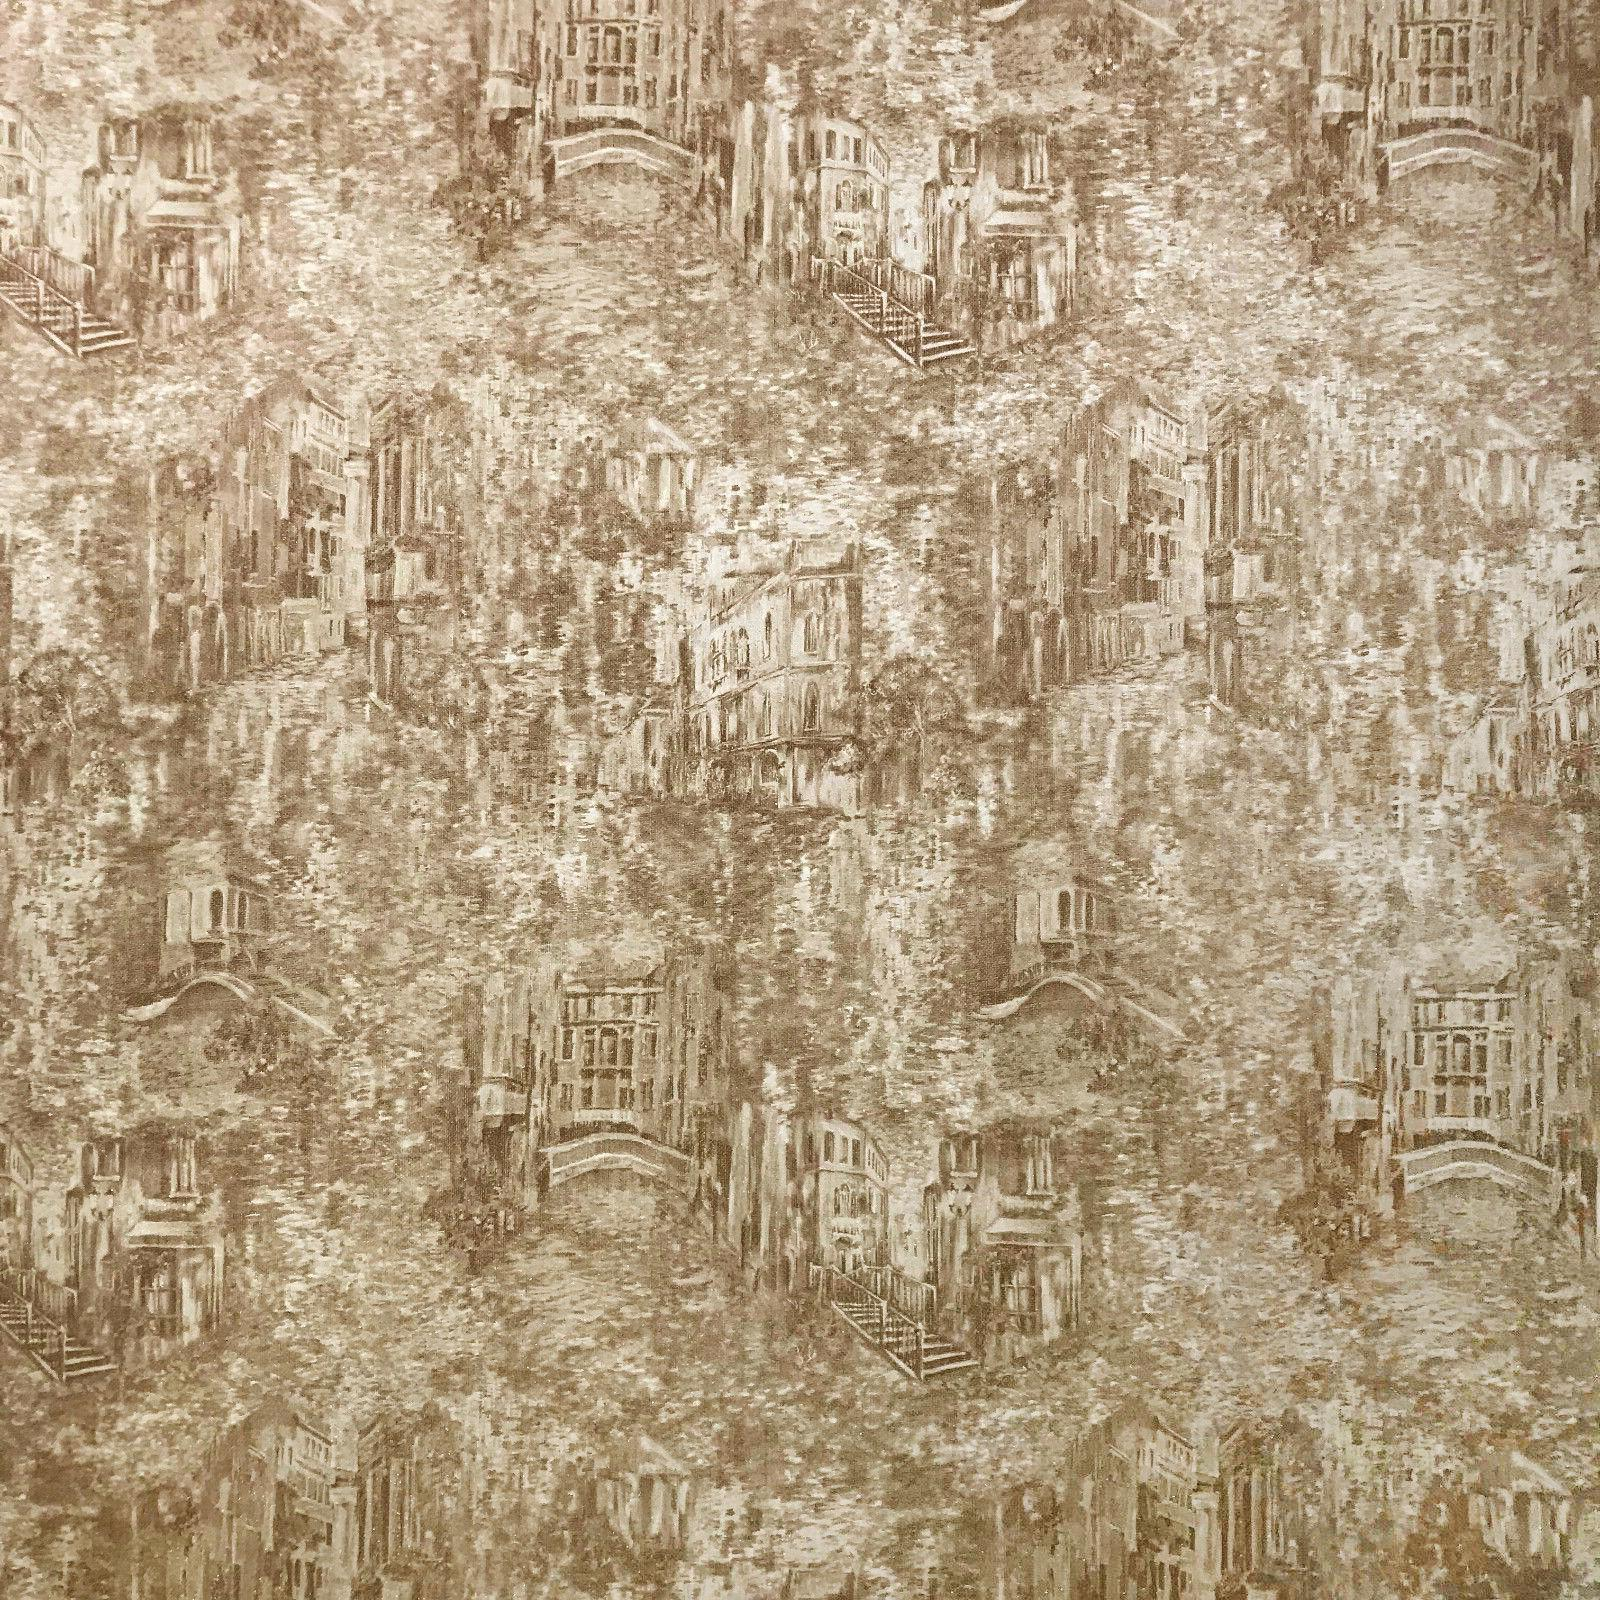 Faux Wallpaper roll textured Vintage